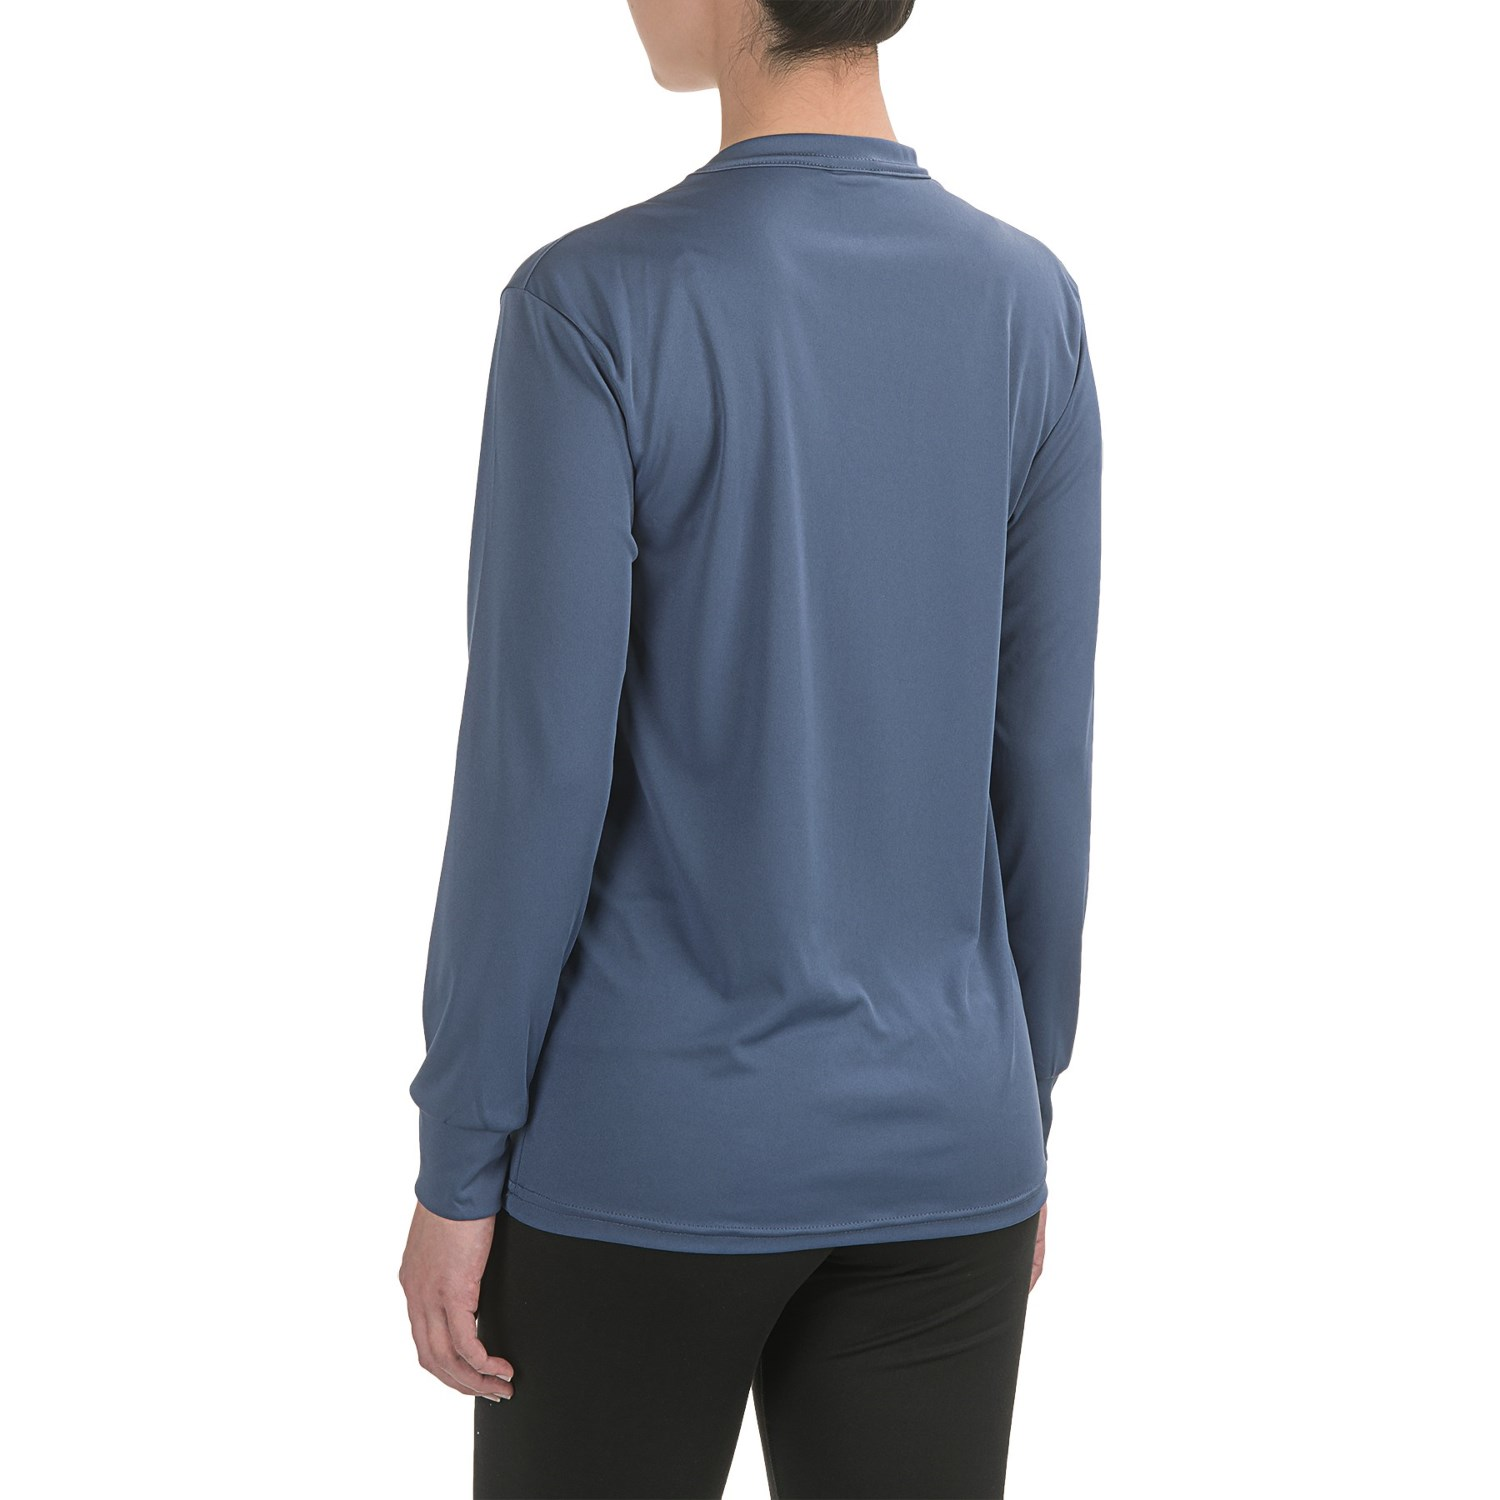 kenyon women Kenyon polarskins expedition base layer bottoms - kenyon's polarskins expedition base layer top is made of cozy fleece for next-to-skin comfort and protection from chills.